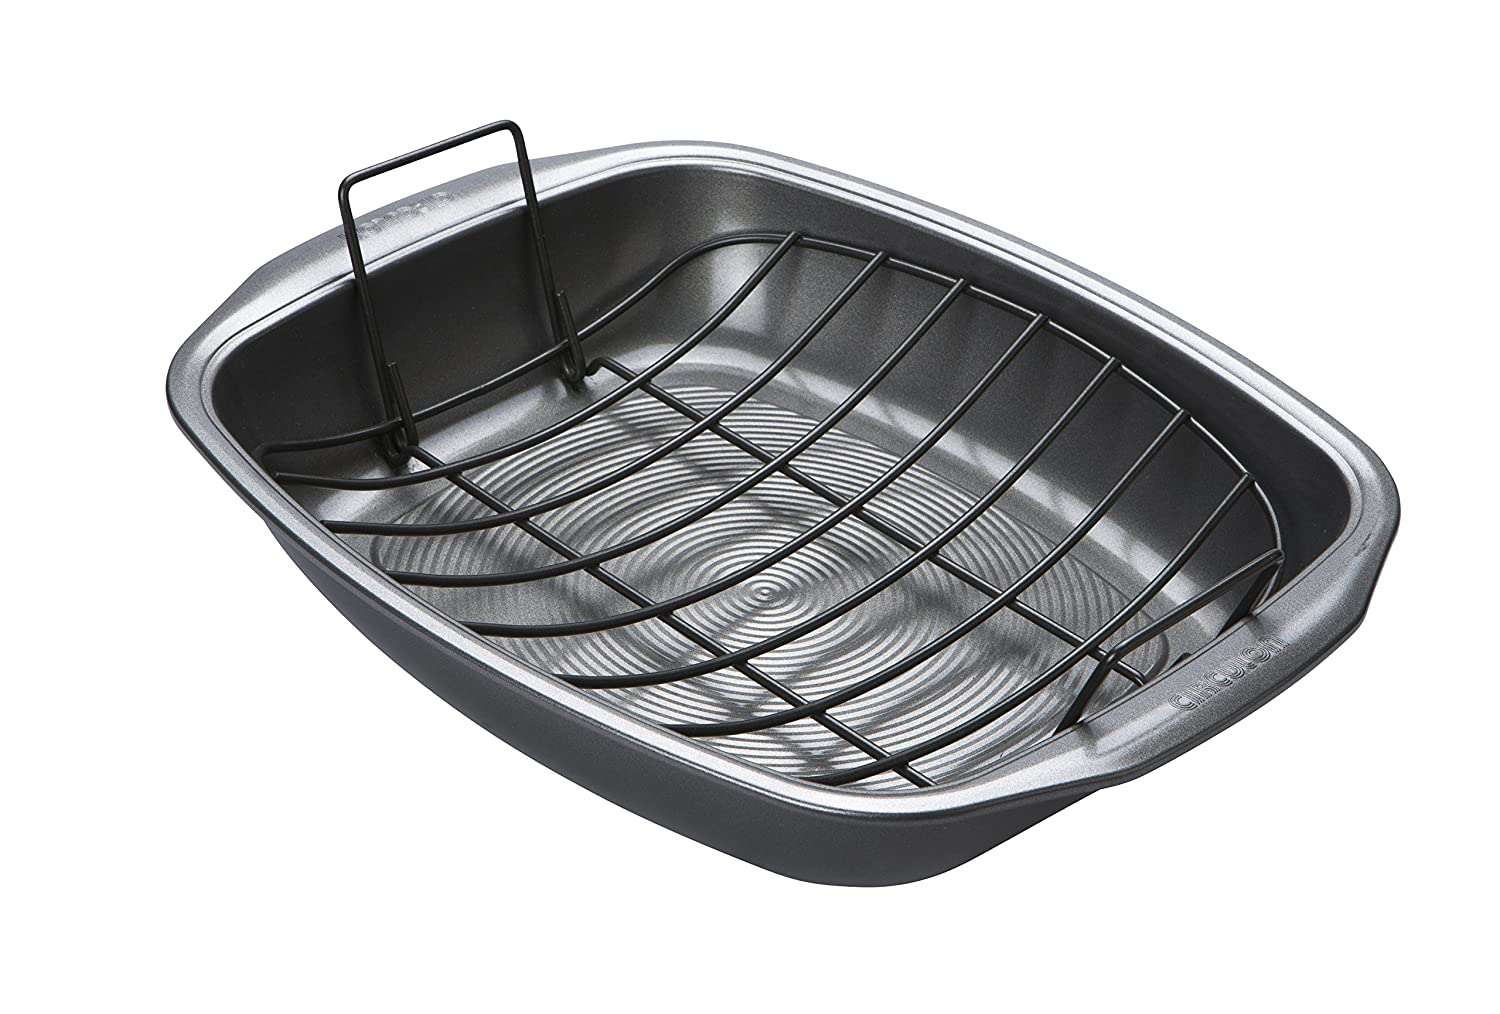 Circulon Momentum Bakeware Steel Non-Stick Roaster and Rack, Carbon, Grey, 39 x 31.5 cm Meyer Group Ltd. 46149